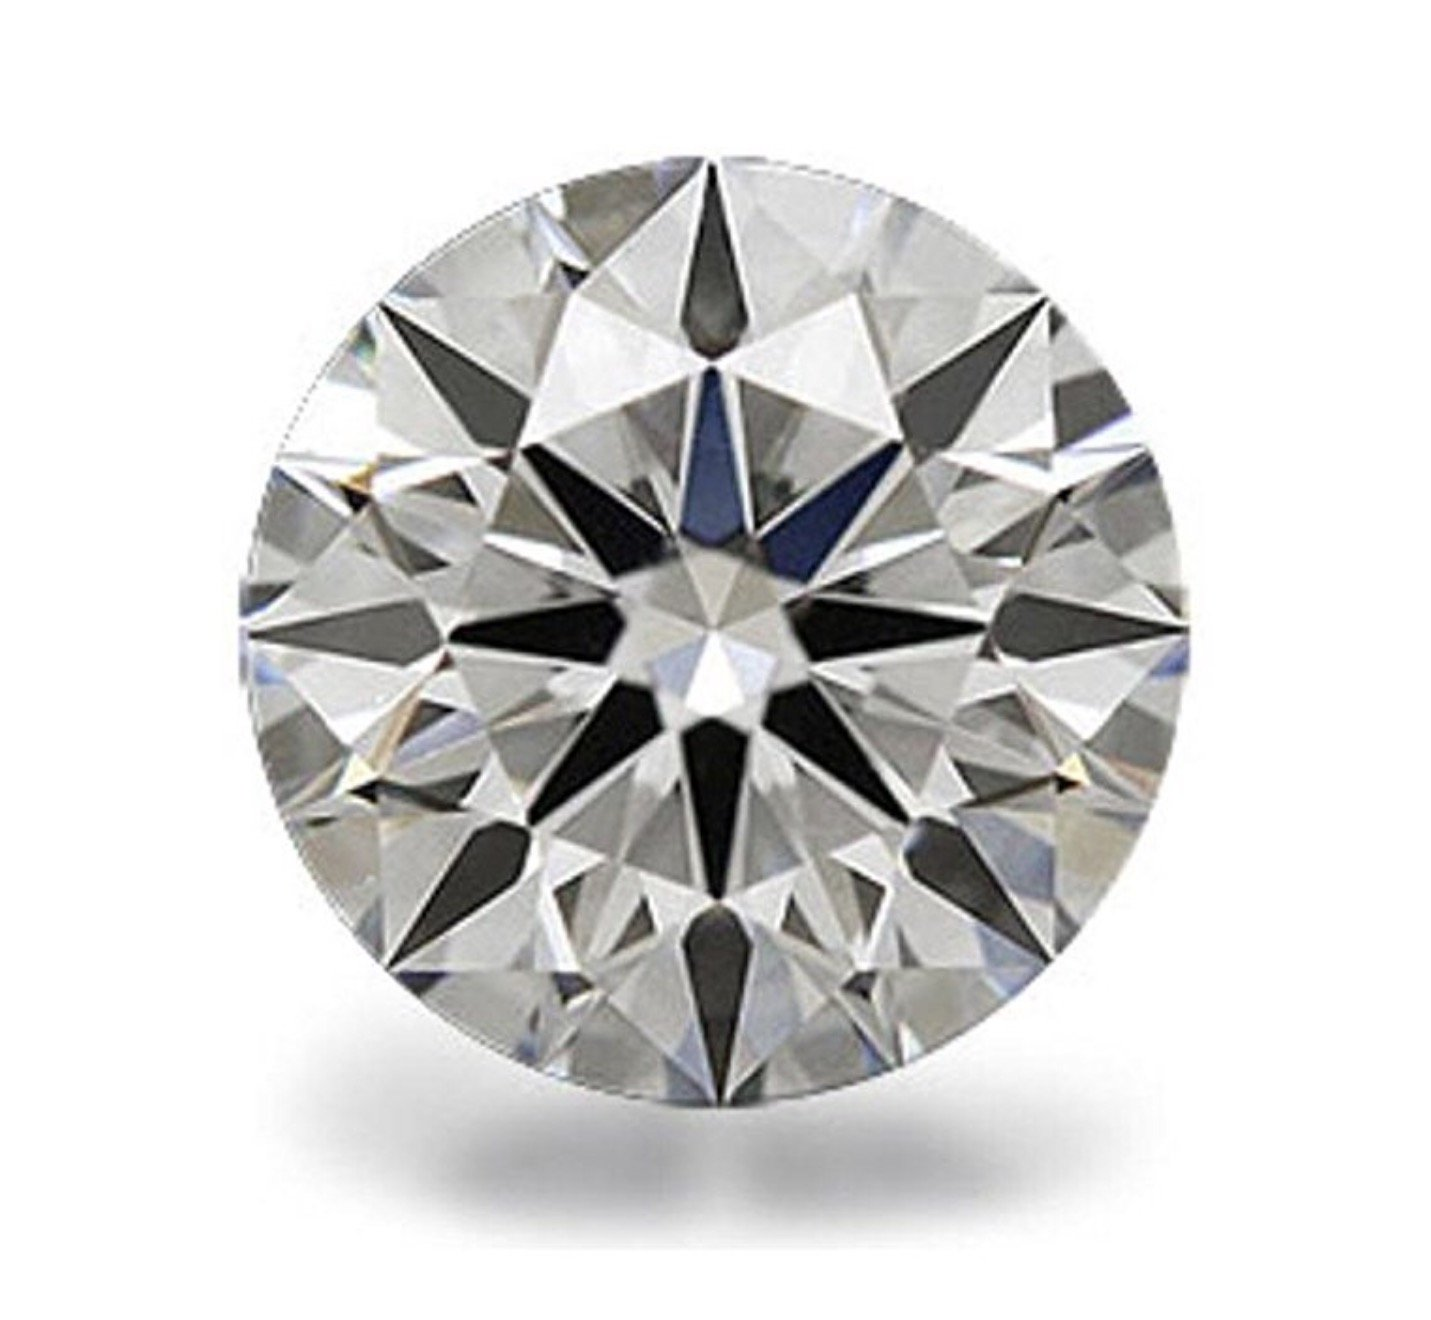 Venetia Top Grade Realistic Hearts and Arrows Cut Round Loose NSCD Simulated Diamond 1 2 3 4 Carats Different Sizes Super Sparkling White Fire (11mm, 4.5 Carats)